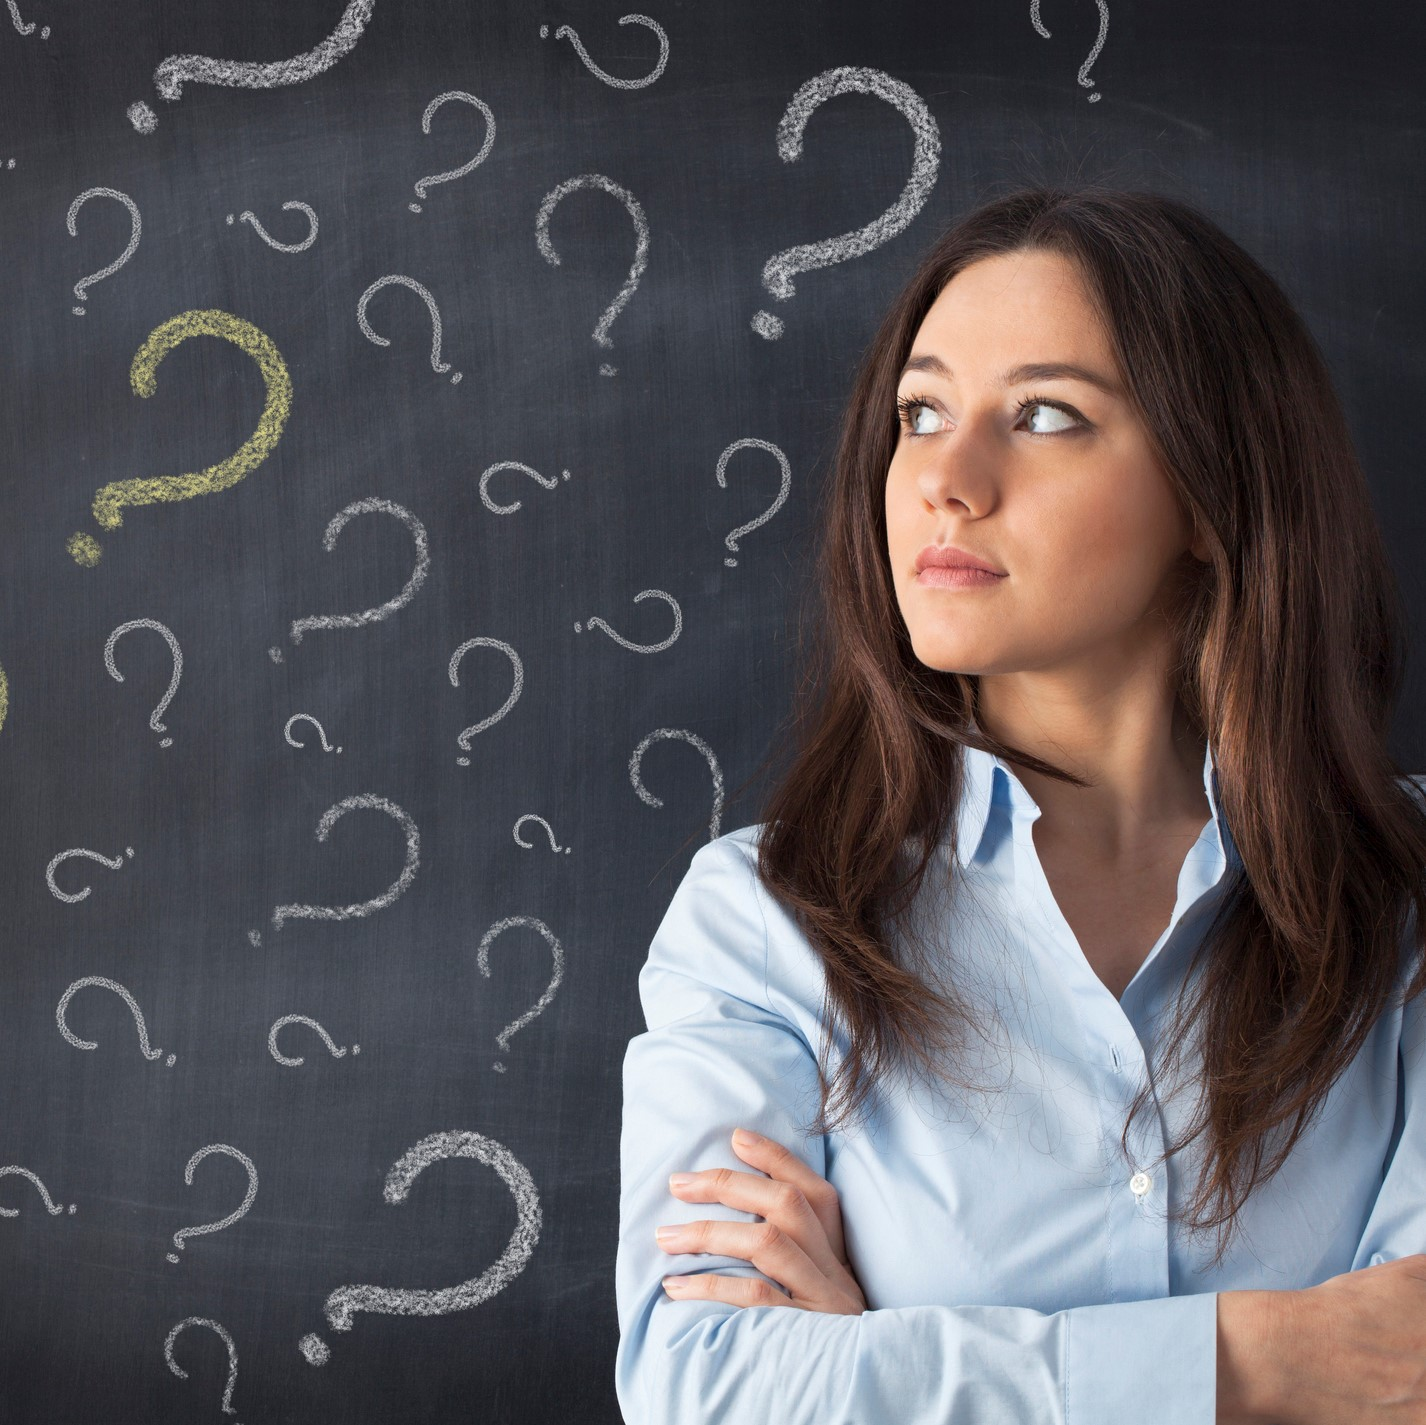 Woman in front of question marks drawn on blackboard